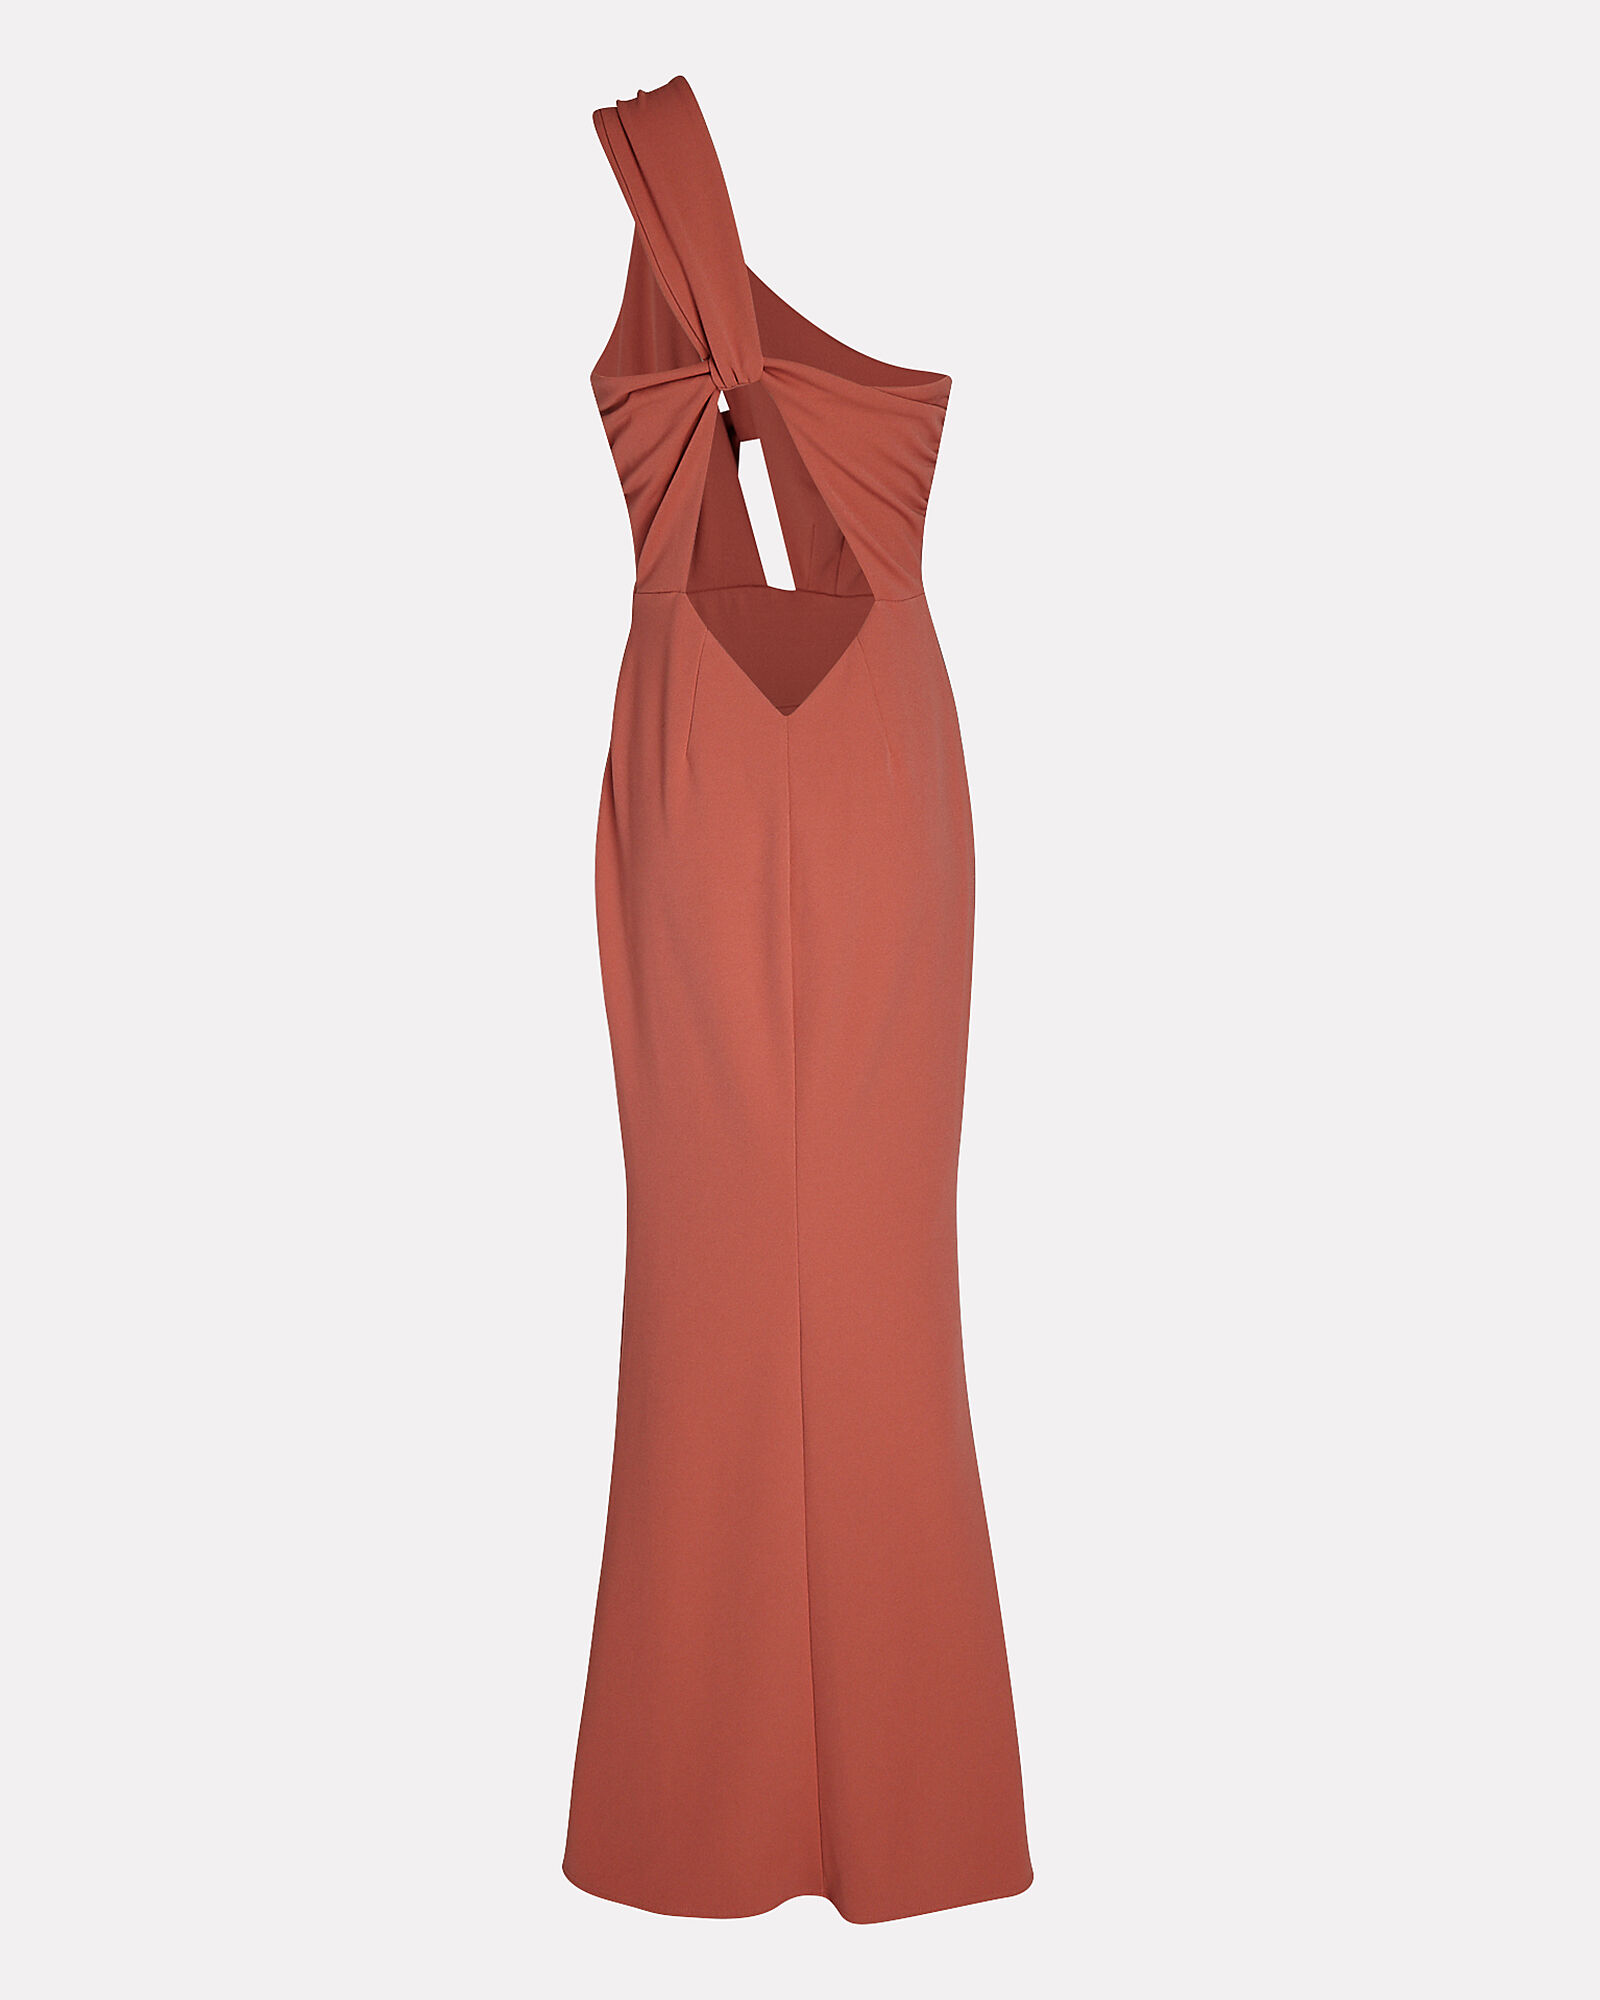 Edgy One-Shoulder Maxi Dress, PALE BROWN, hi-res